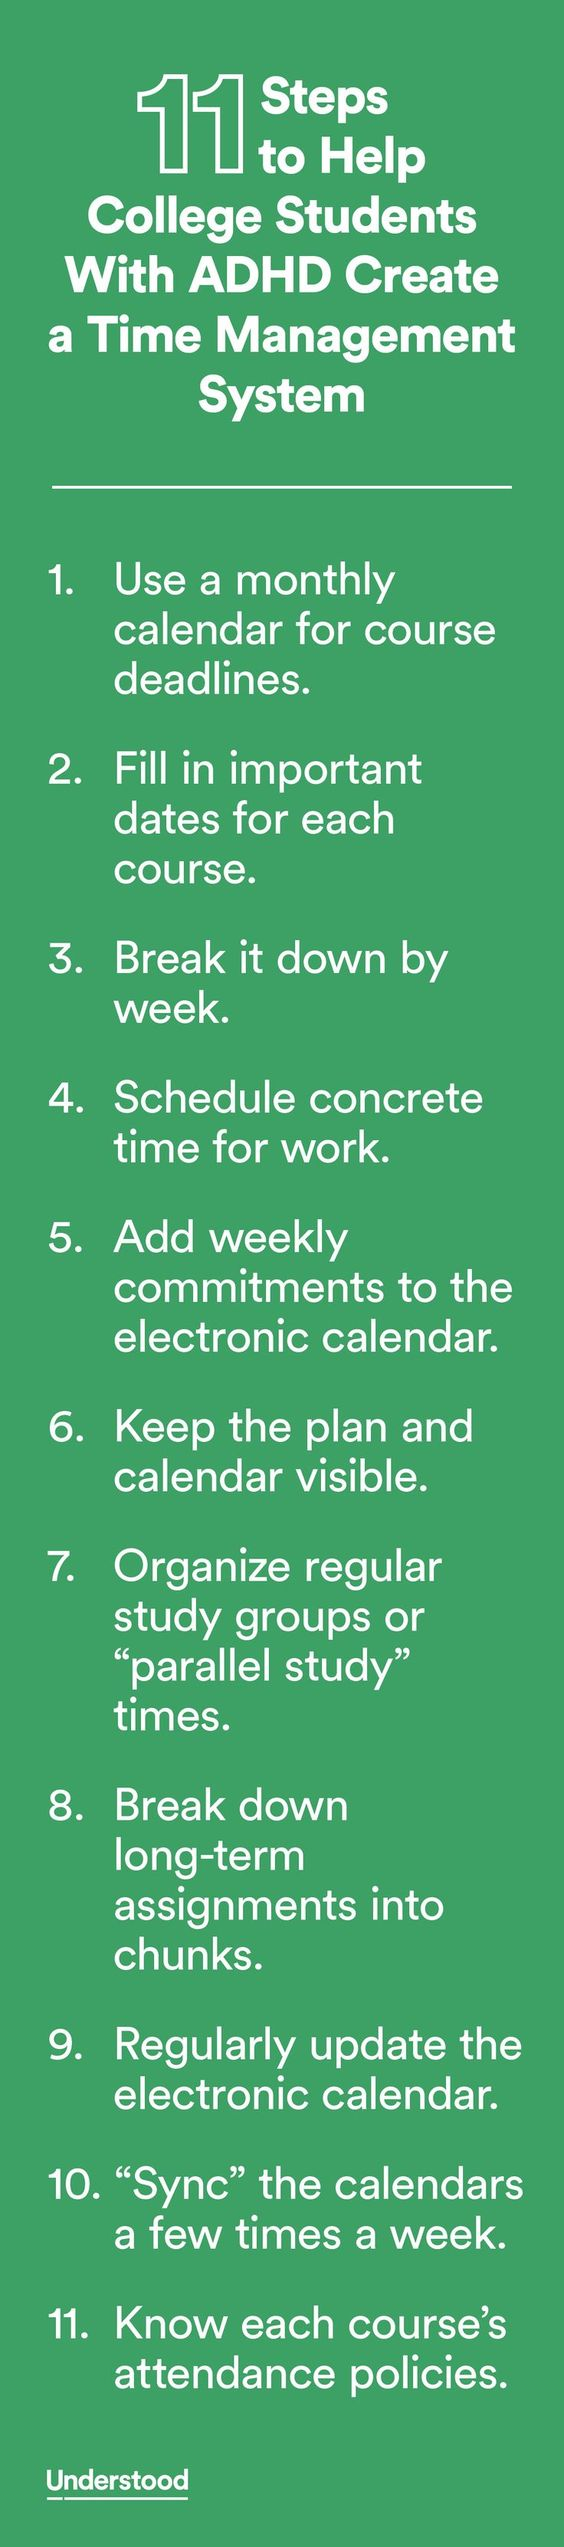 how to create a time management system